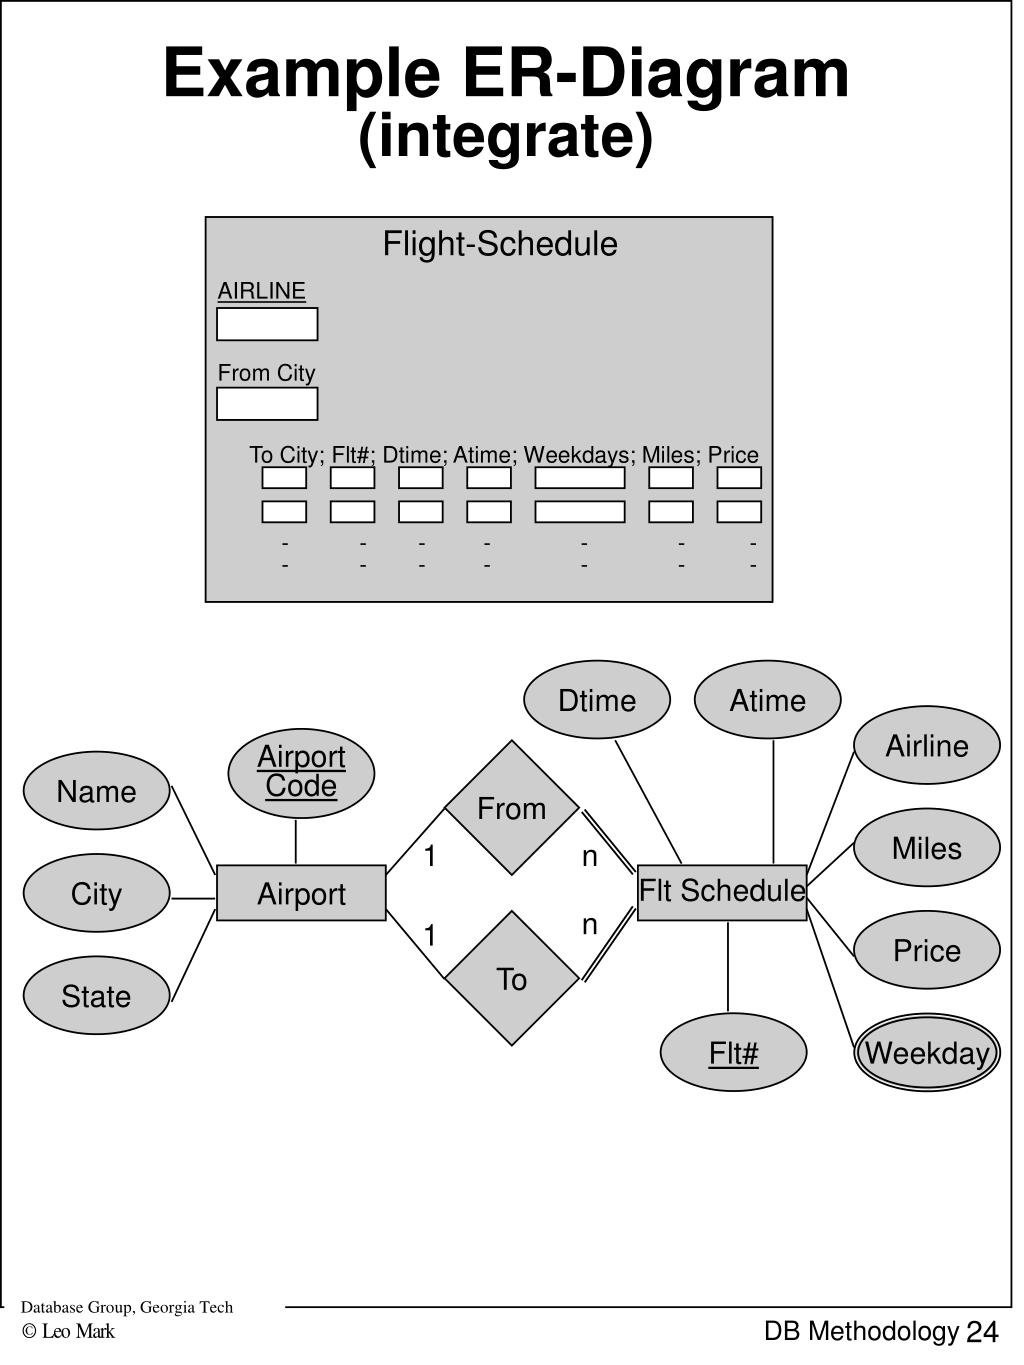 Flight-Schedule